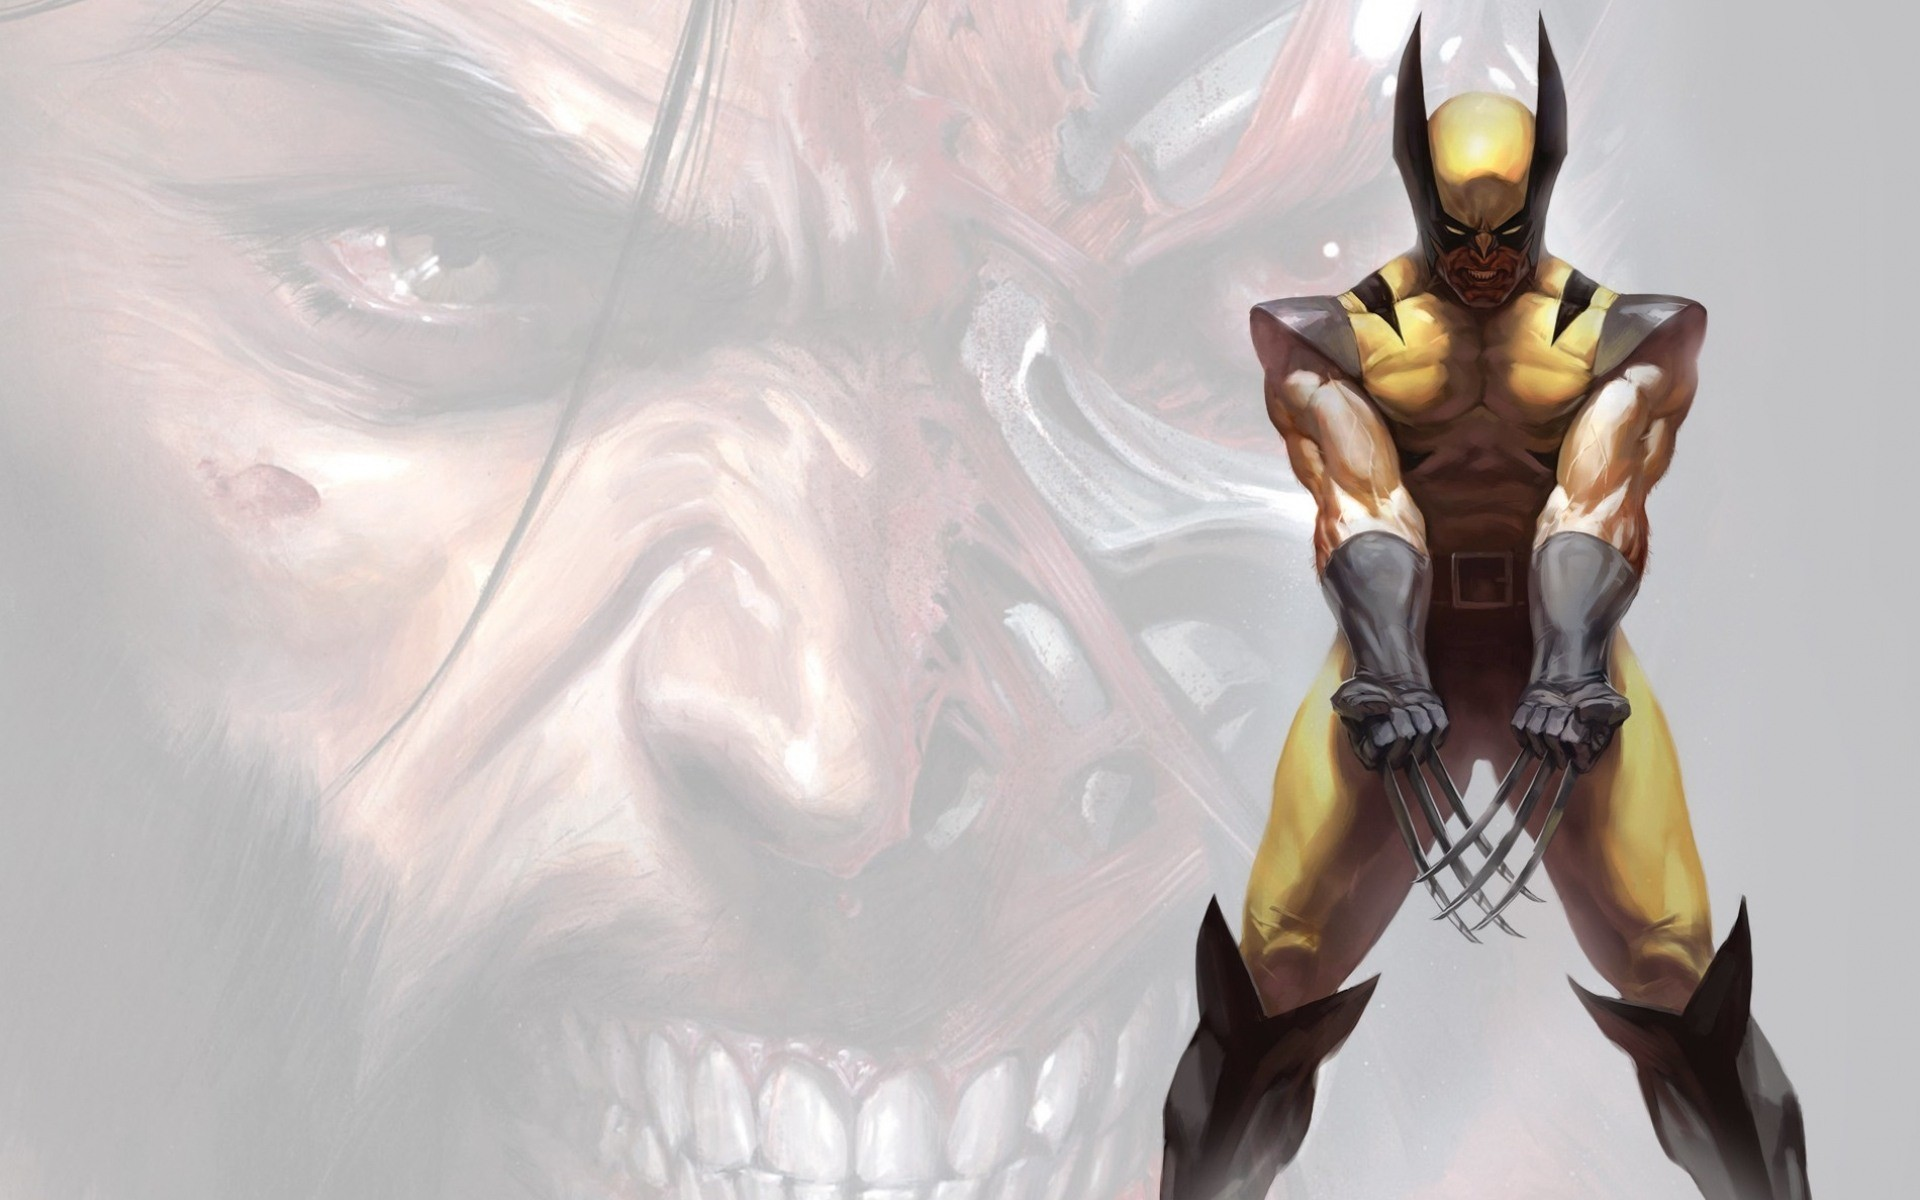 Res: 1920x1200, Wolverine, Marvel Comics, Hd Marvel Wallpapers, Cool, 1920×1200 Wallpaper HD